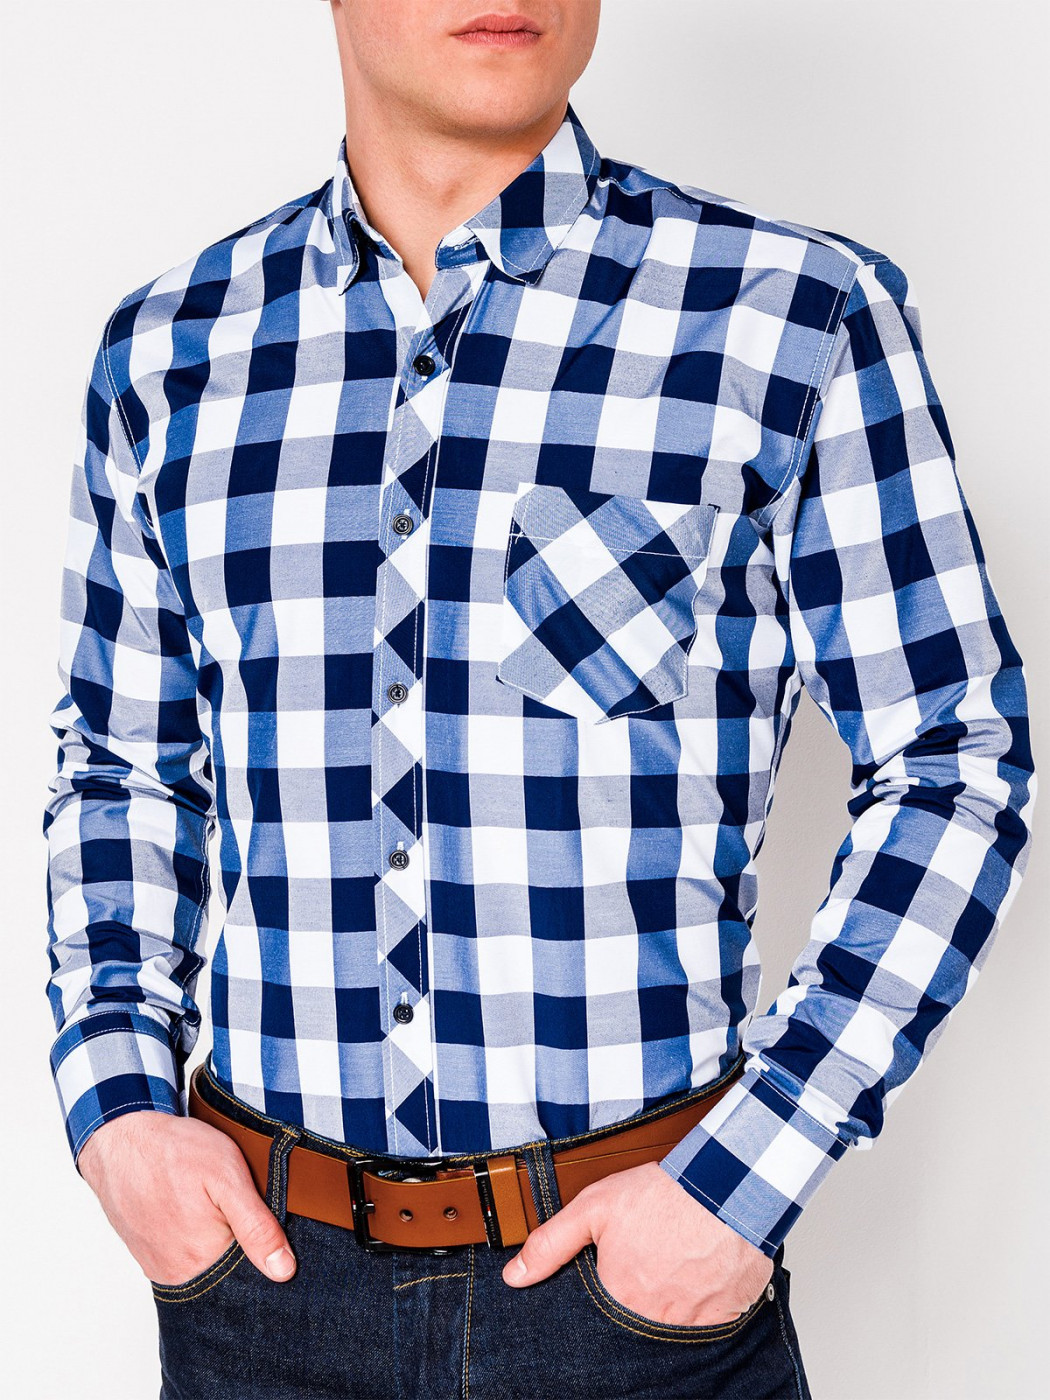 Men's check shirt with long sleeves K282 - navy